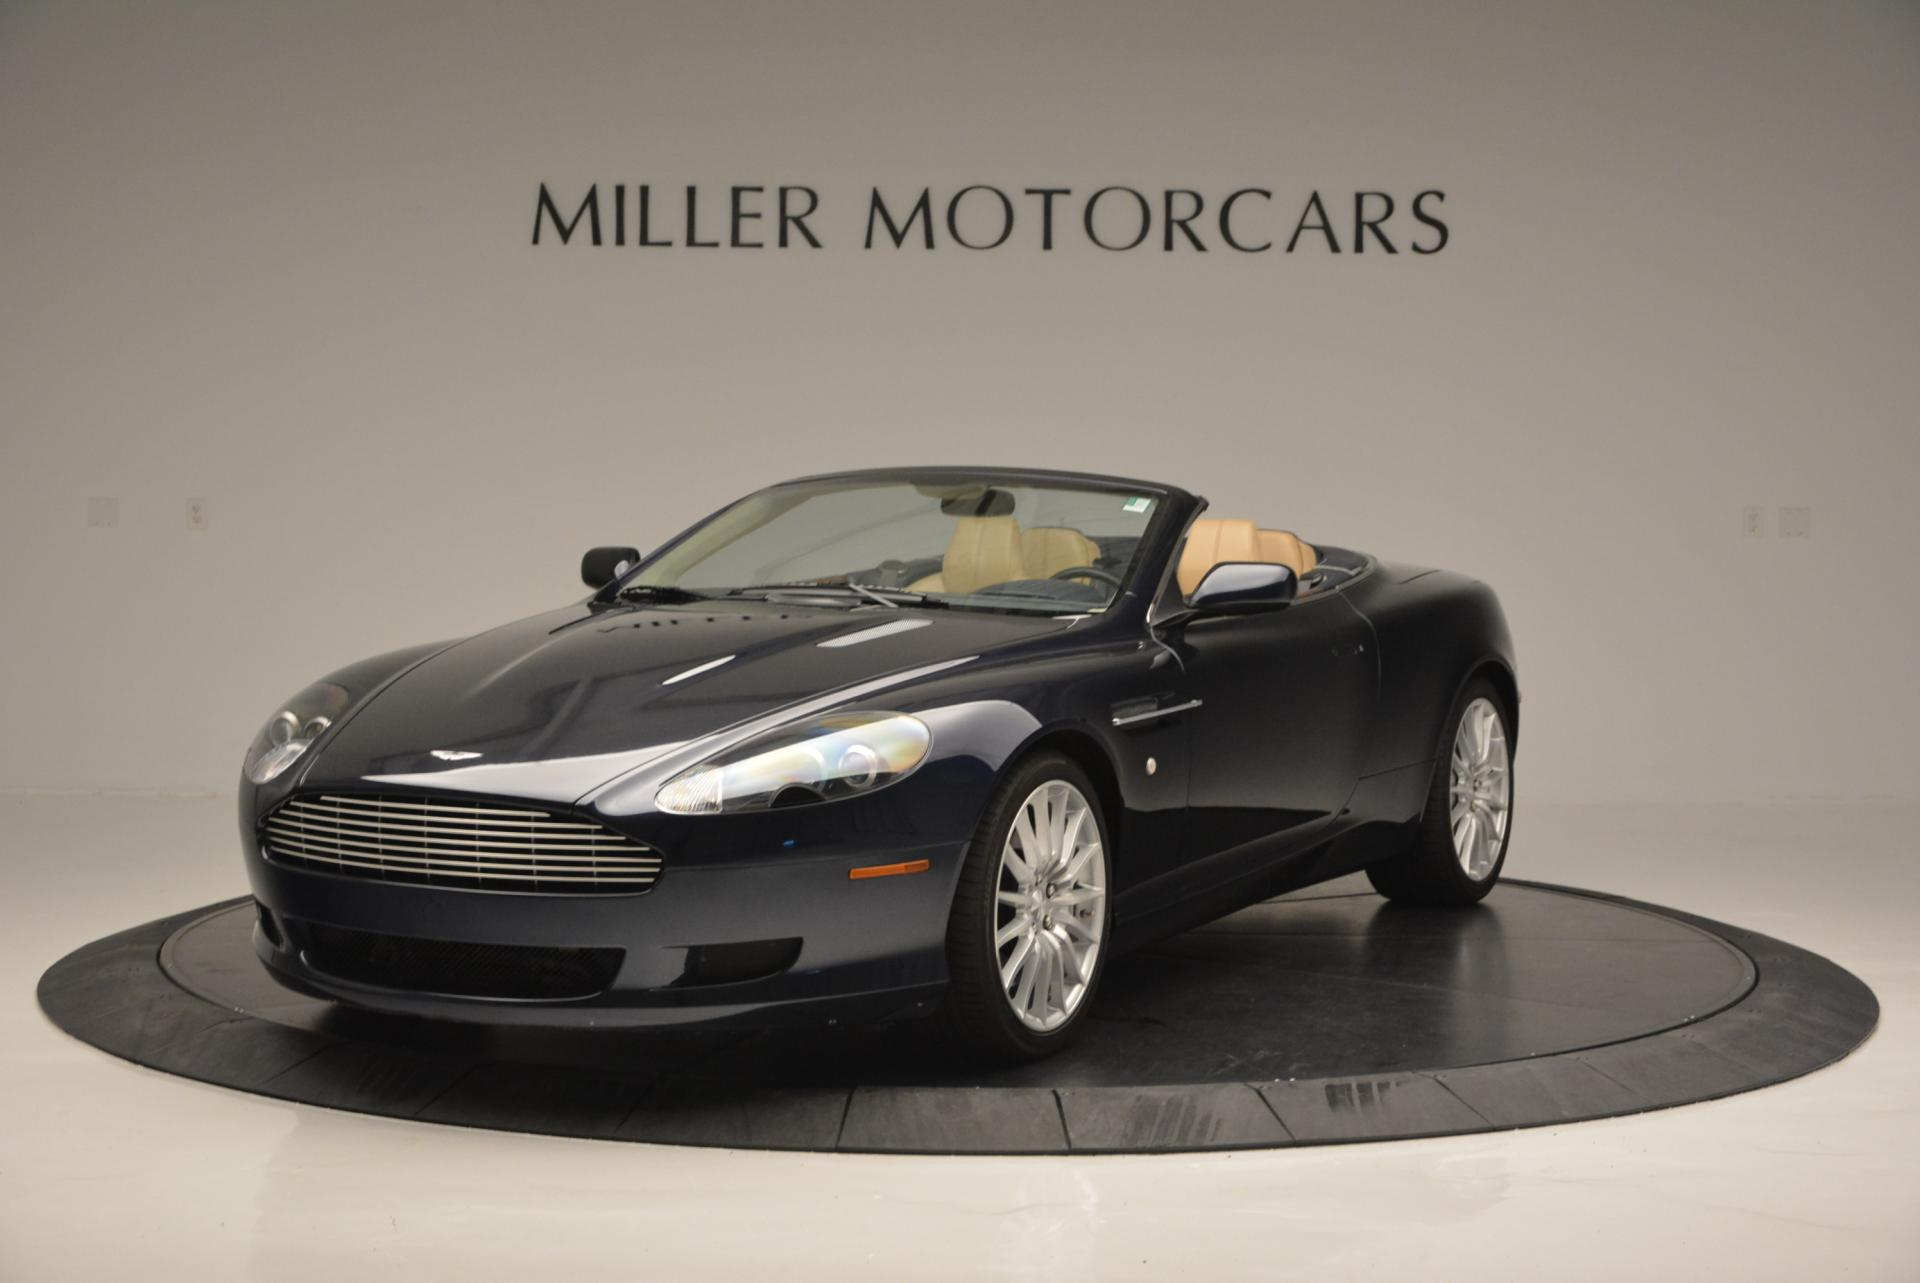 Used 2007 Aston Martin DB9 Volante for sale Sold at Alfa Romeo of Westport in Westport CT 06880 1